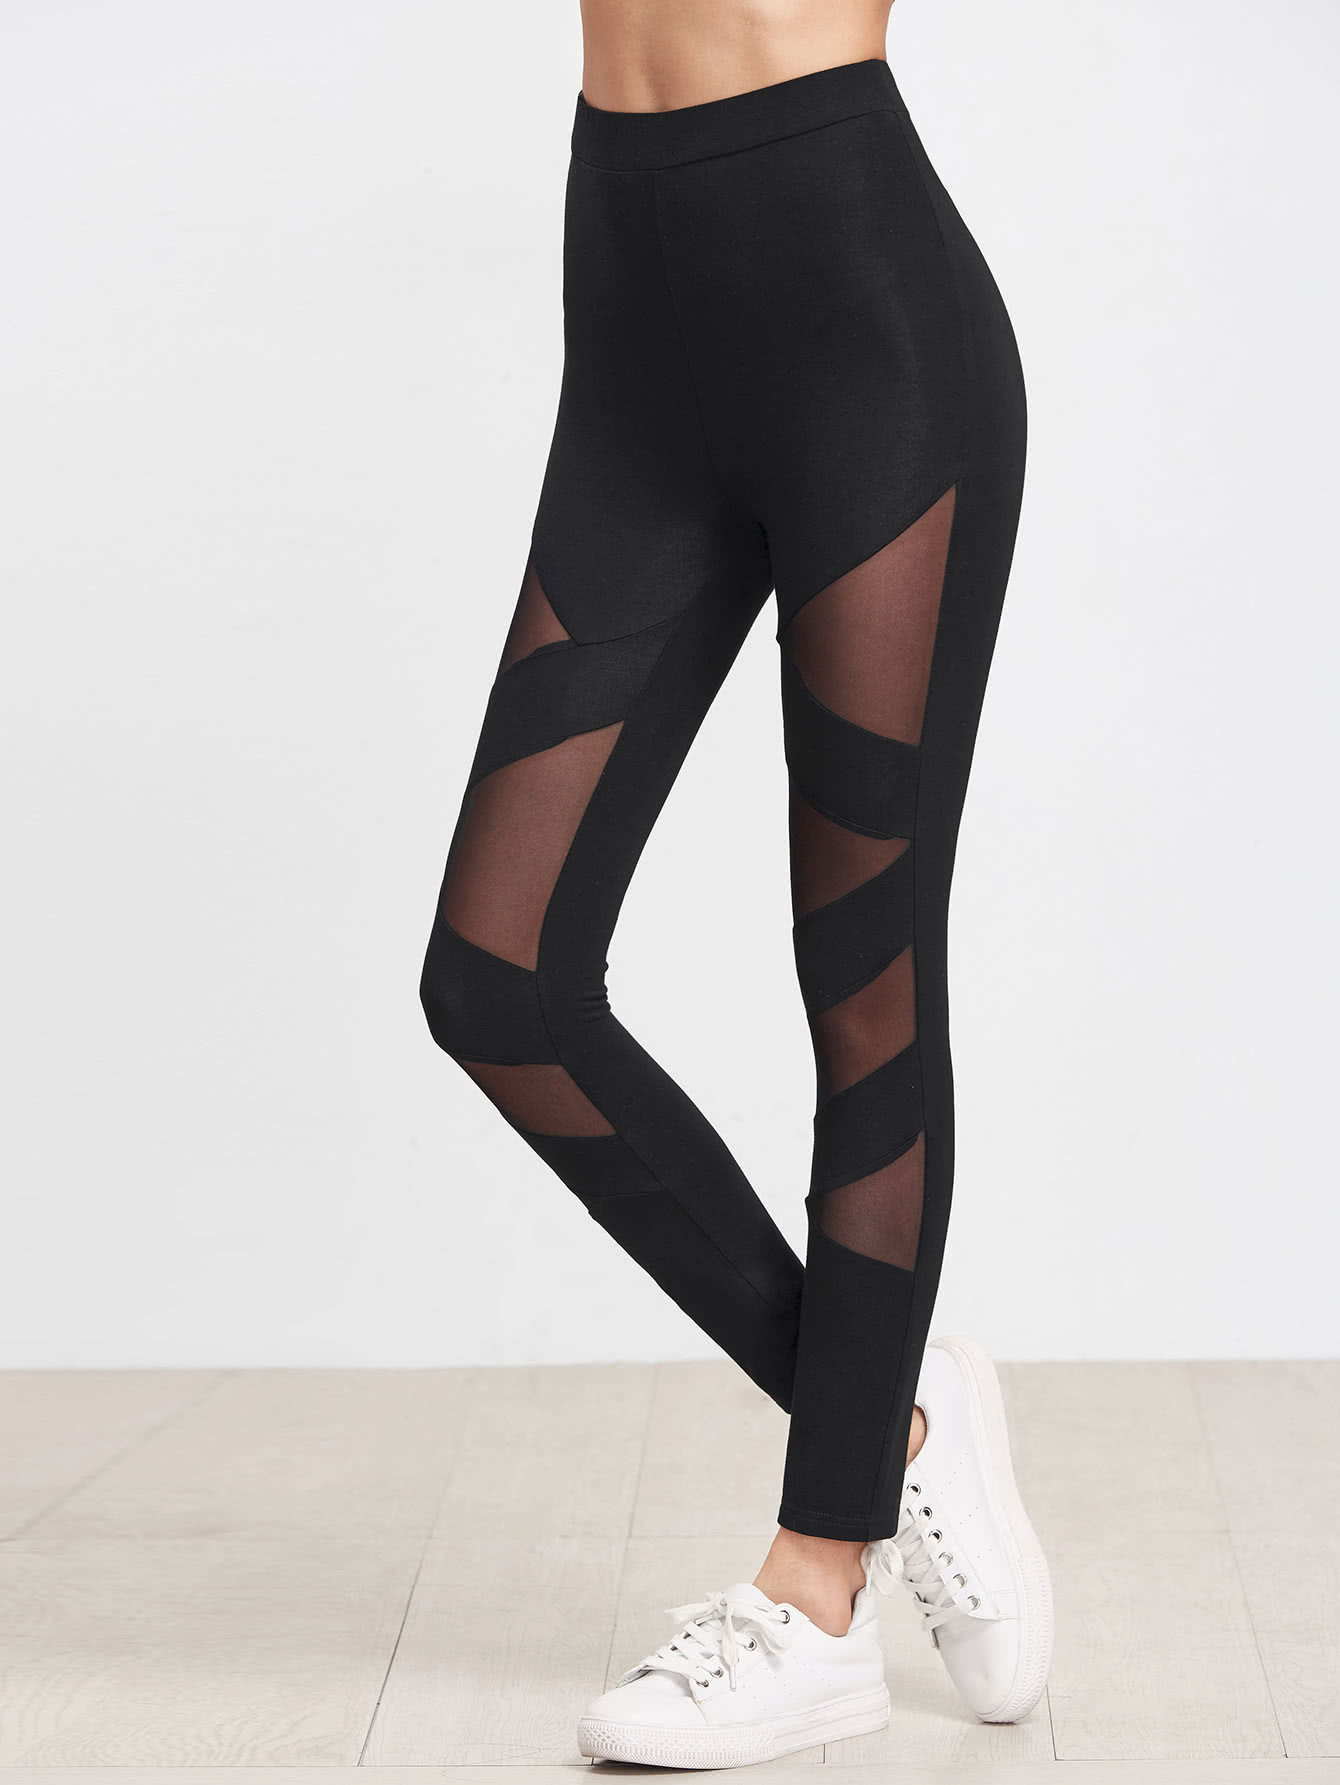 Mesh Insert Striped Leggings side panel mesh insert camo leggings